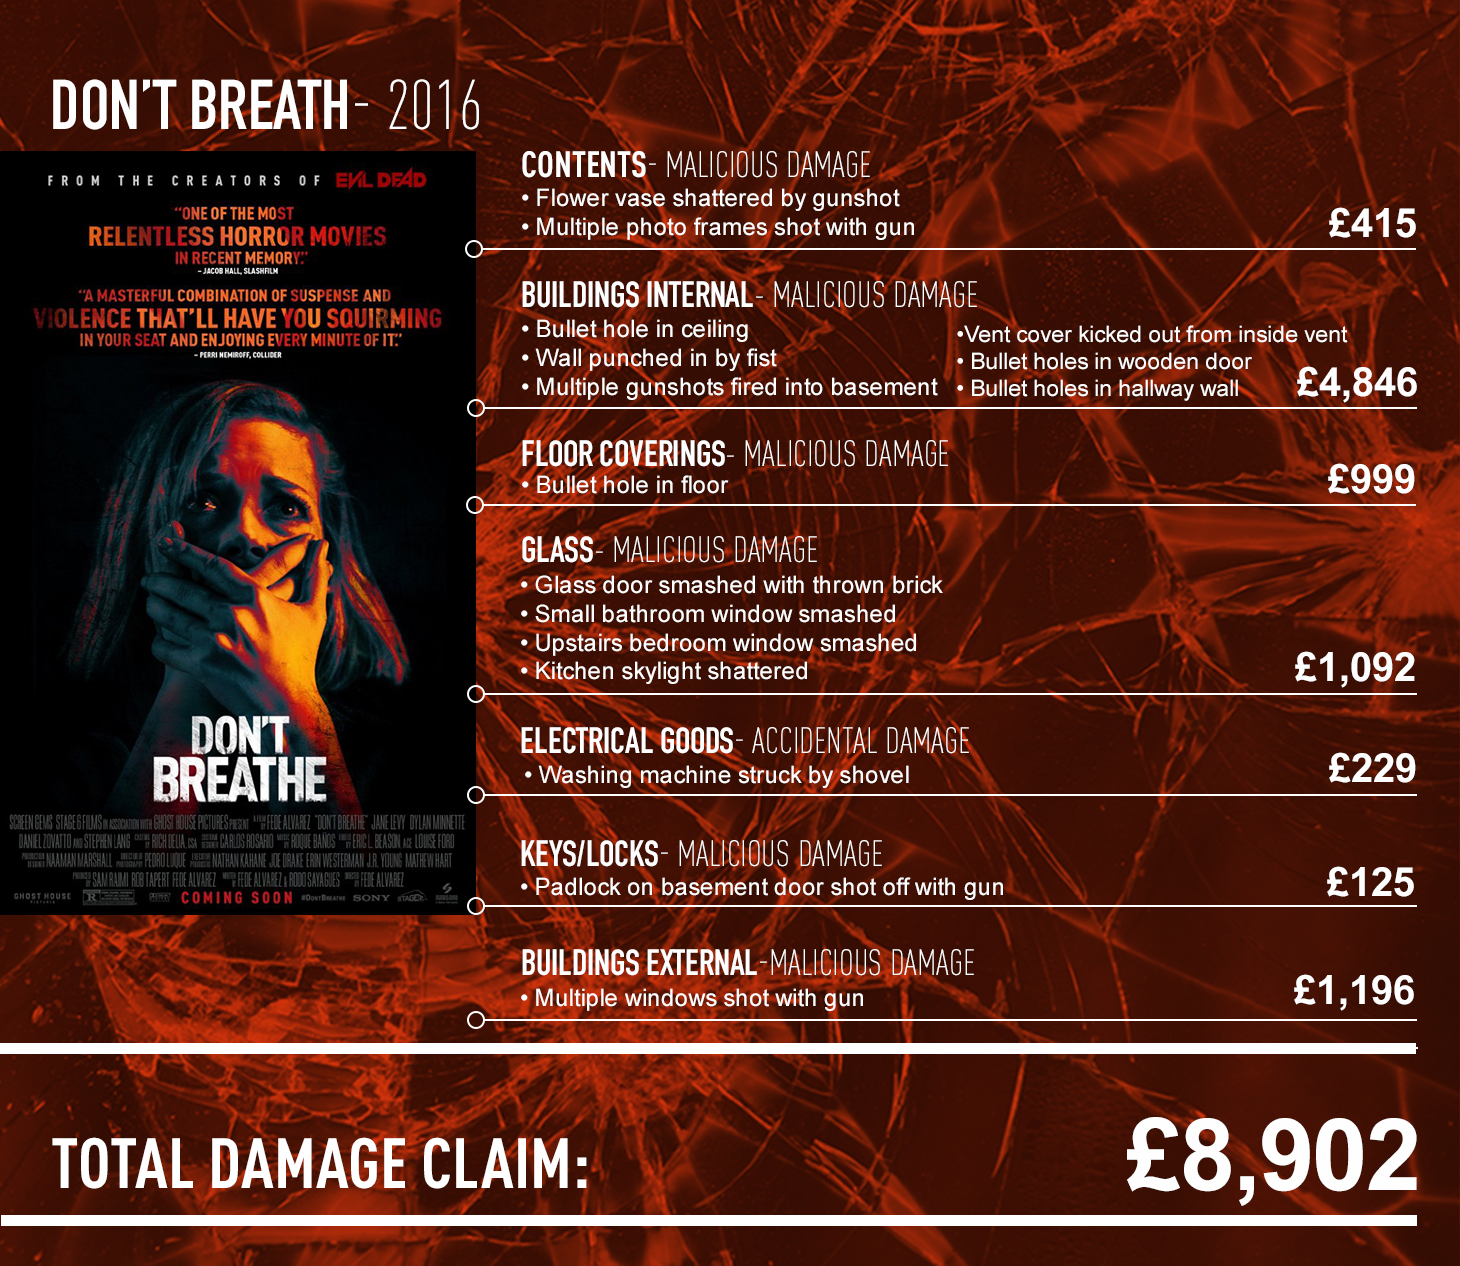 Don't breath claims report